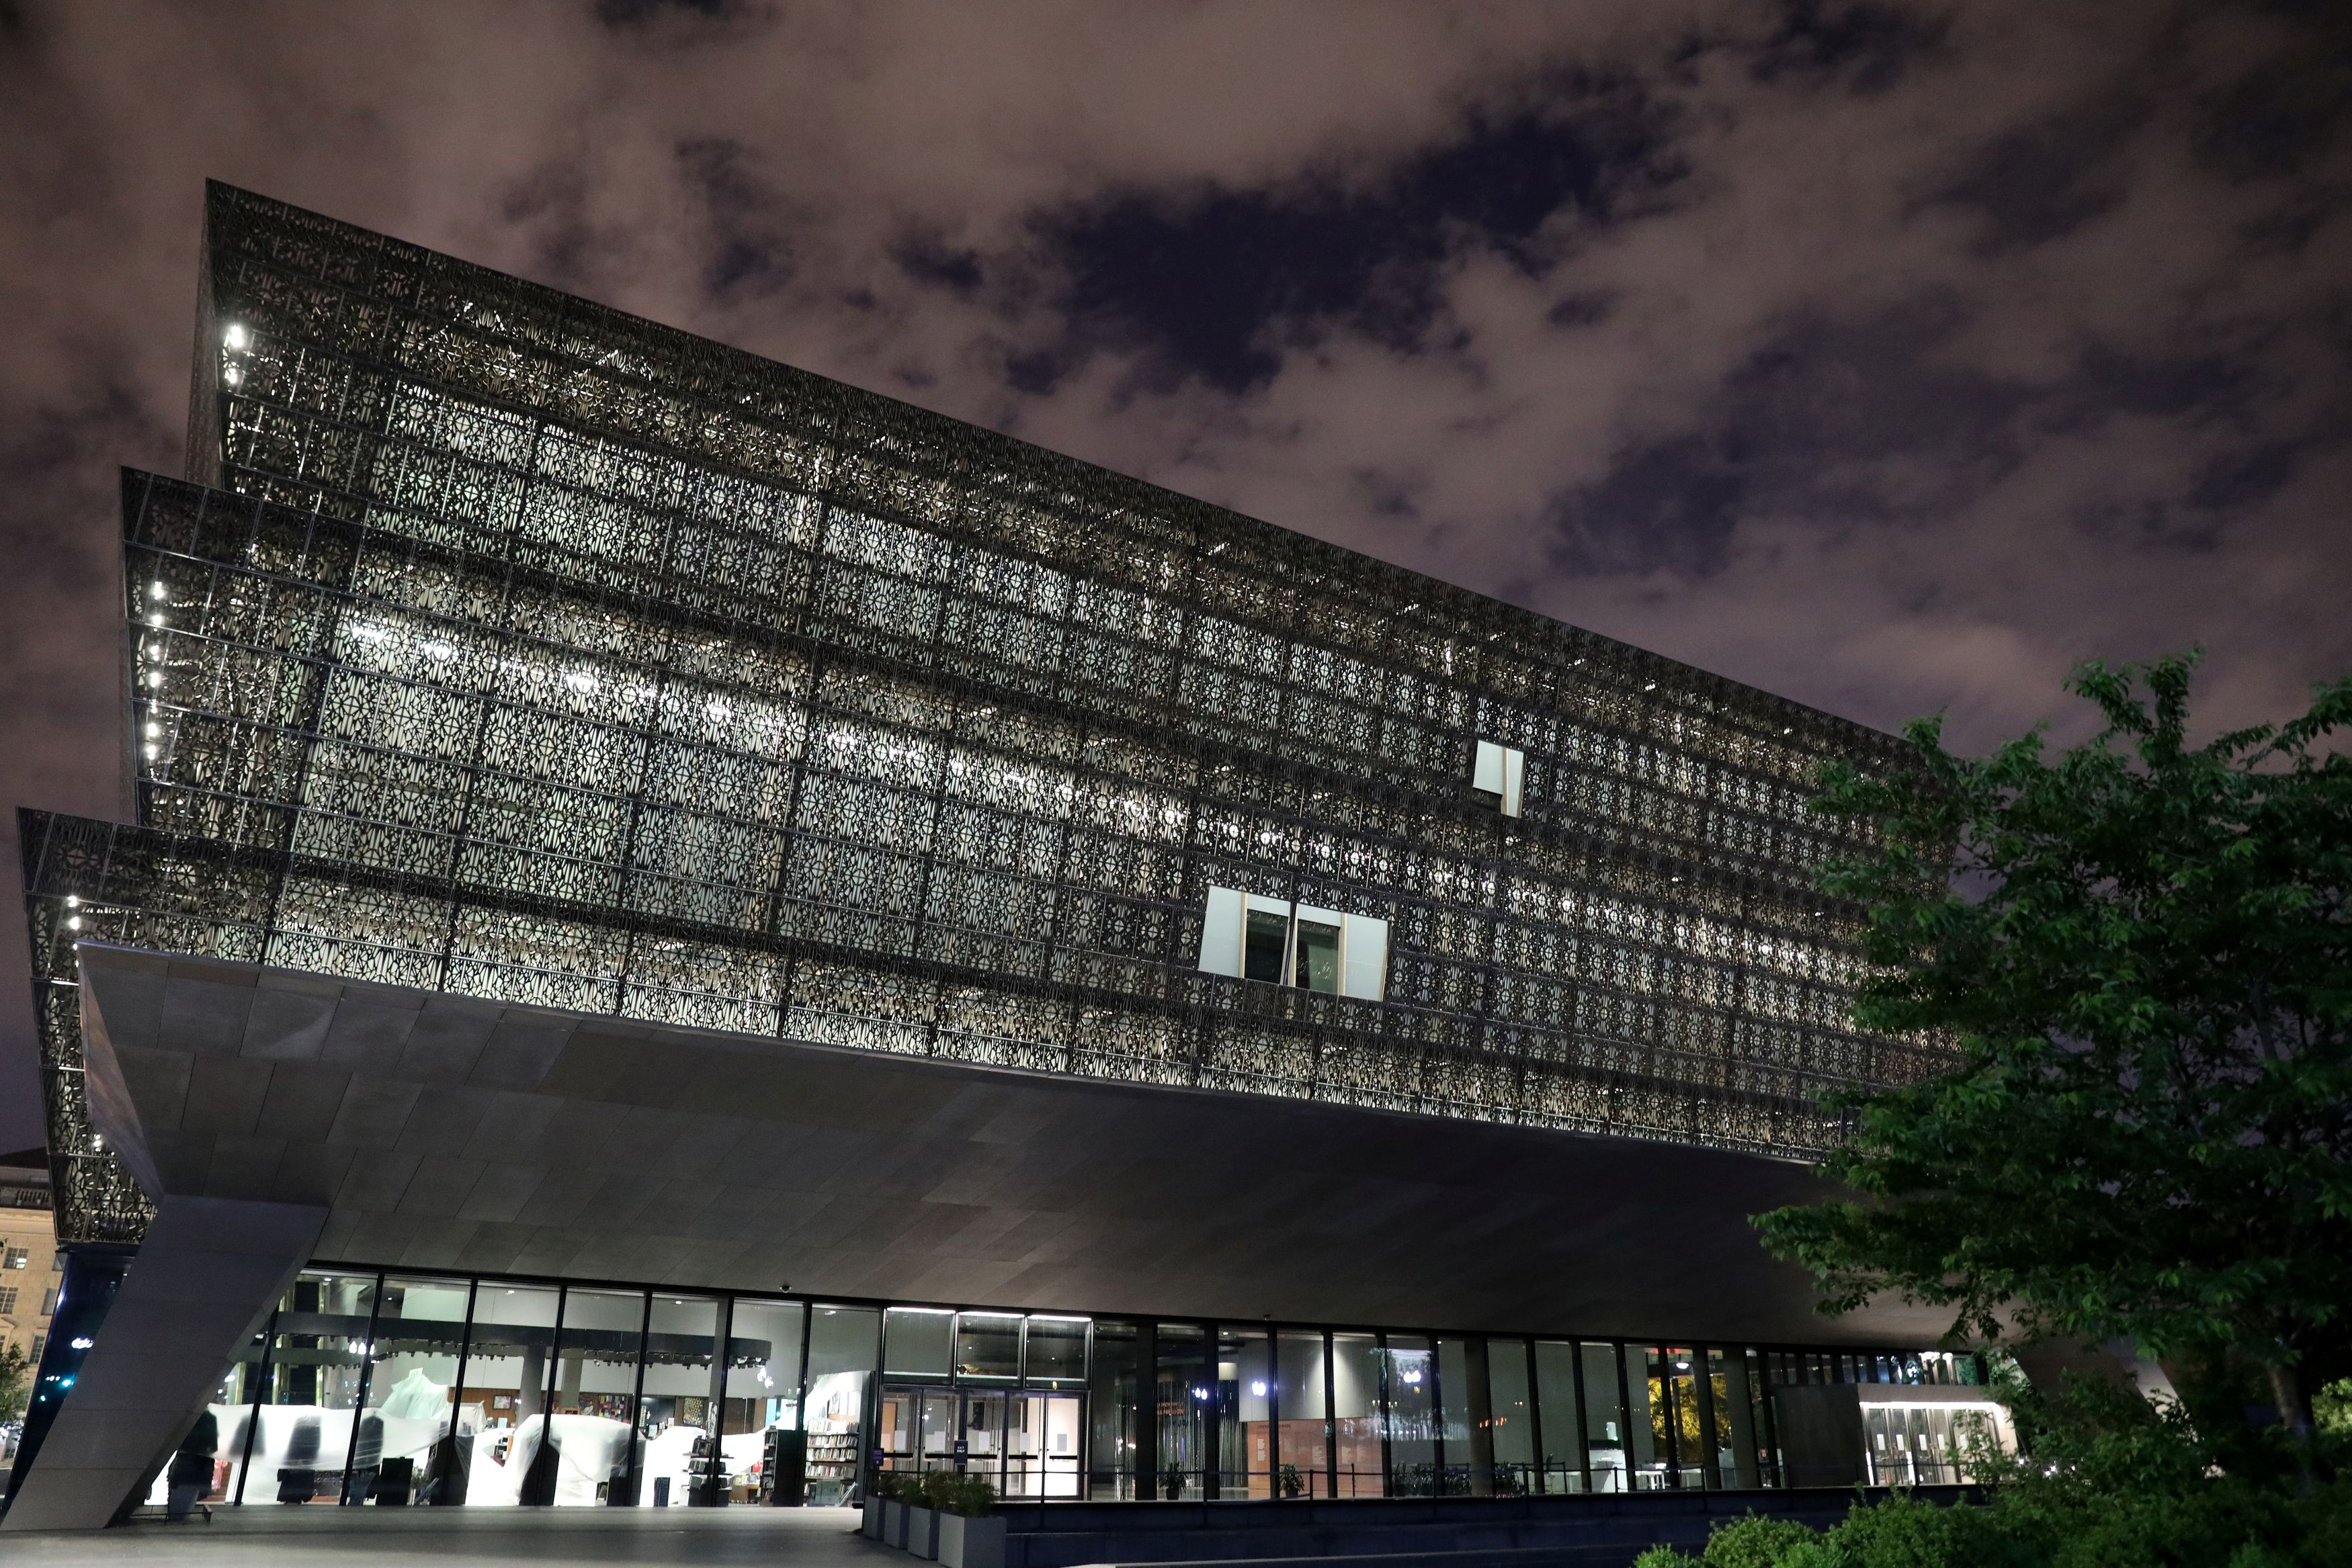 New African American Museum Program Offers Guide To Talking About Race The Washington Post